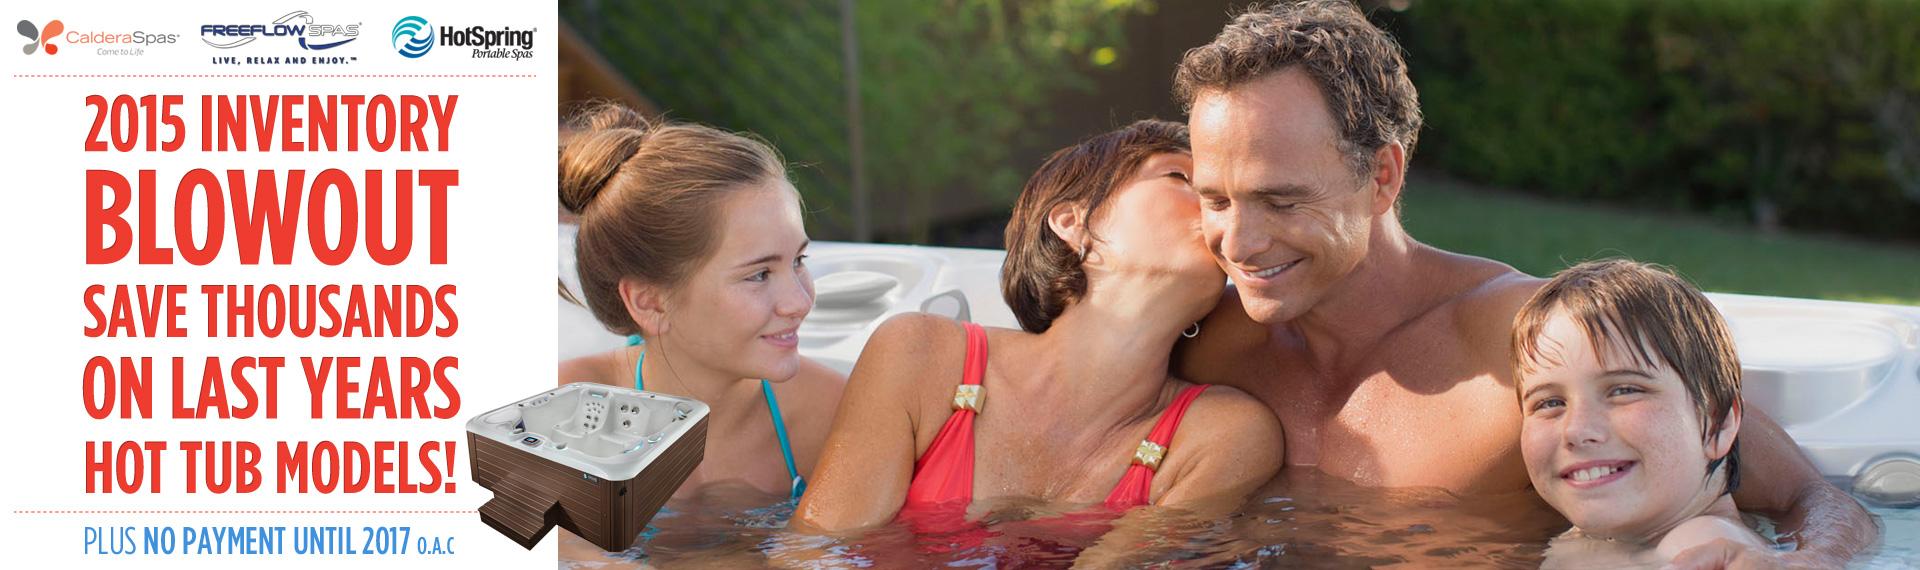 hottub_sale_slider1920x570